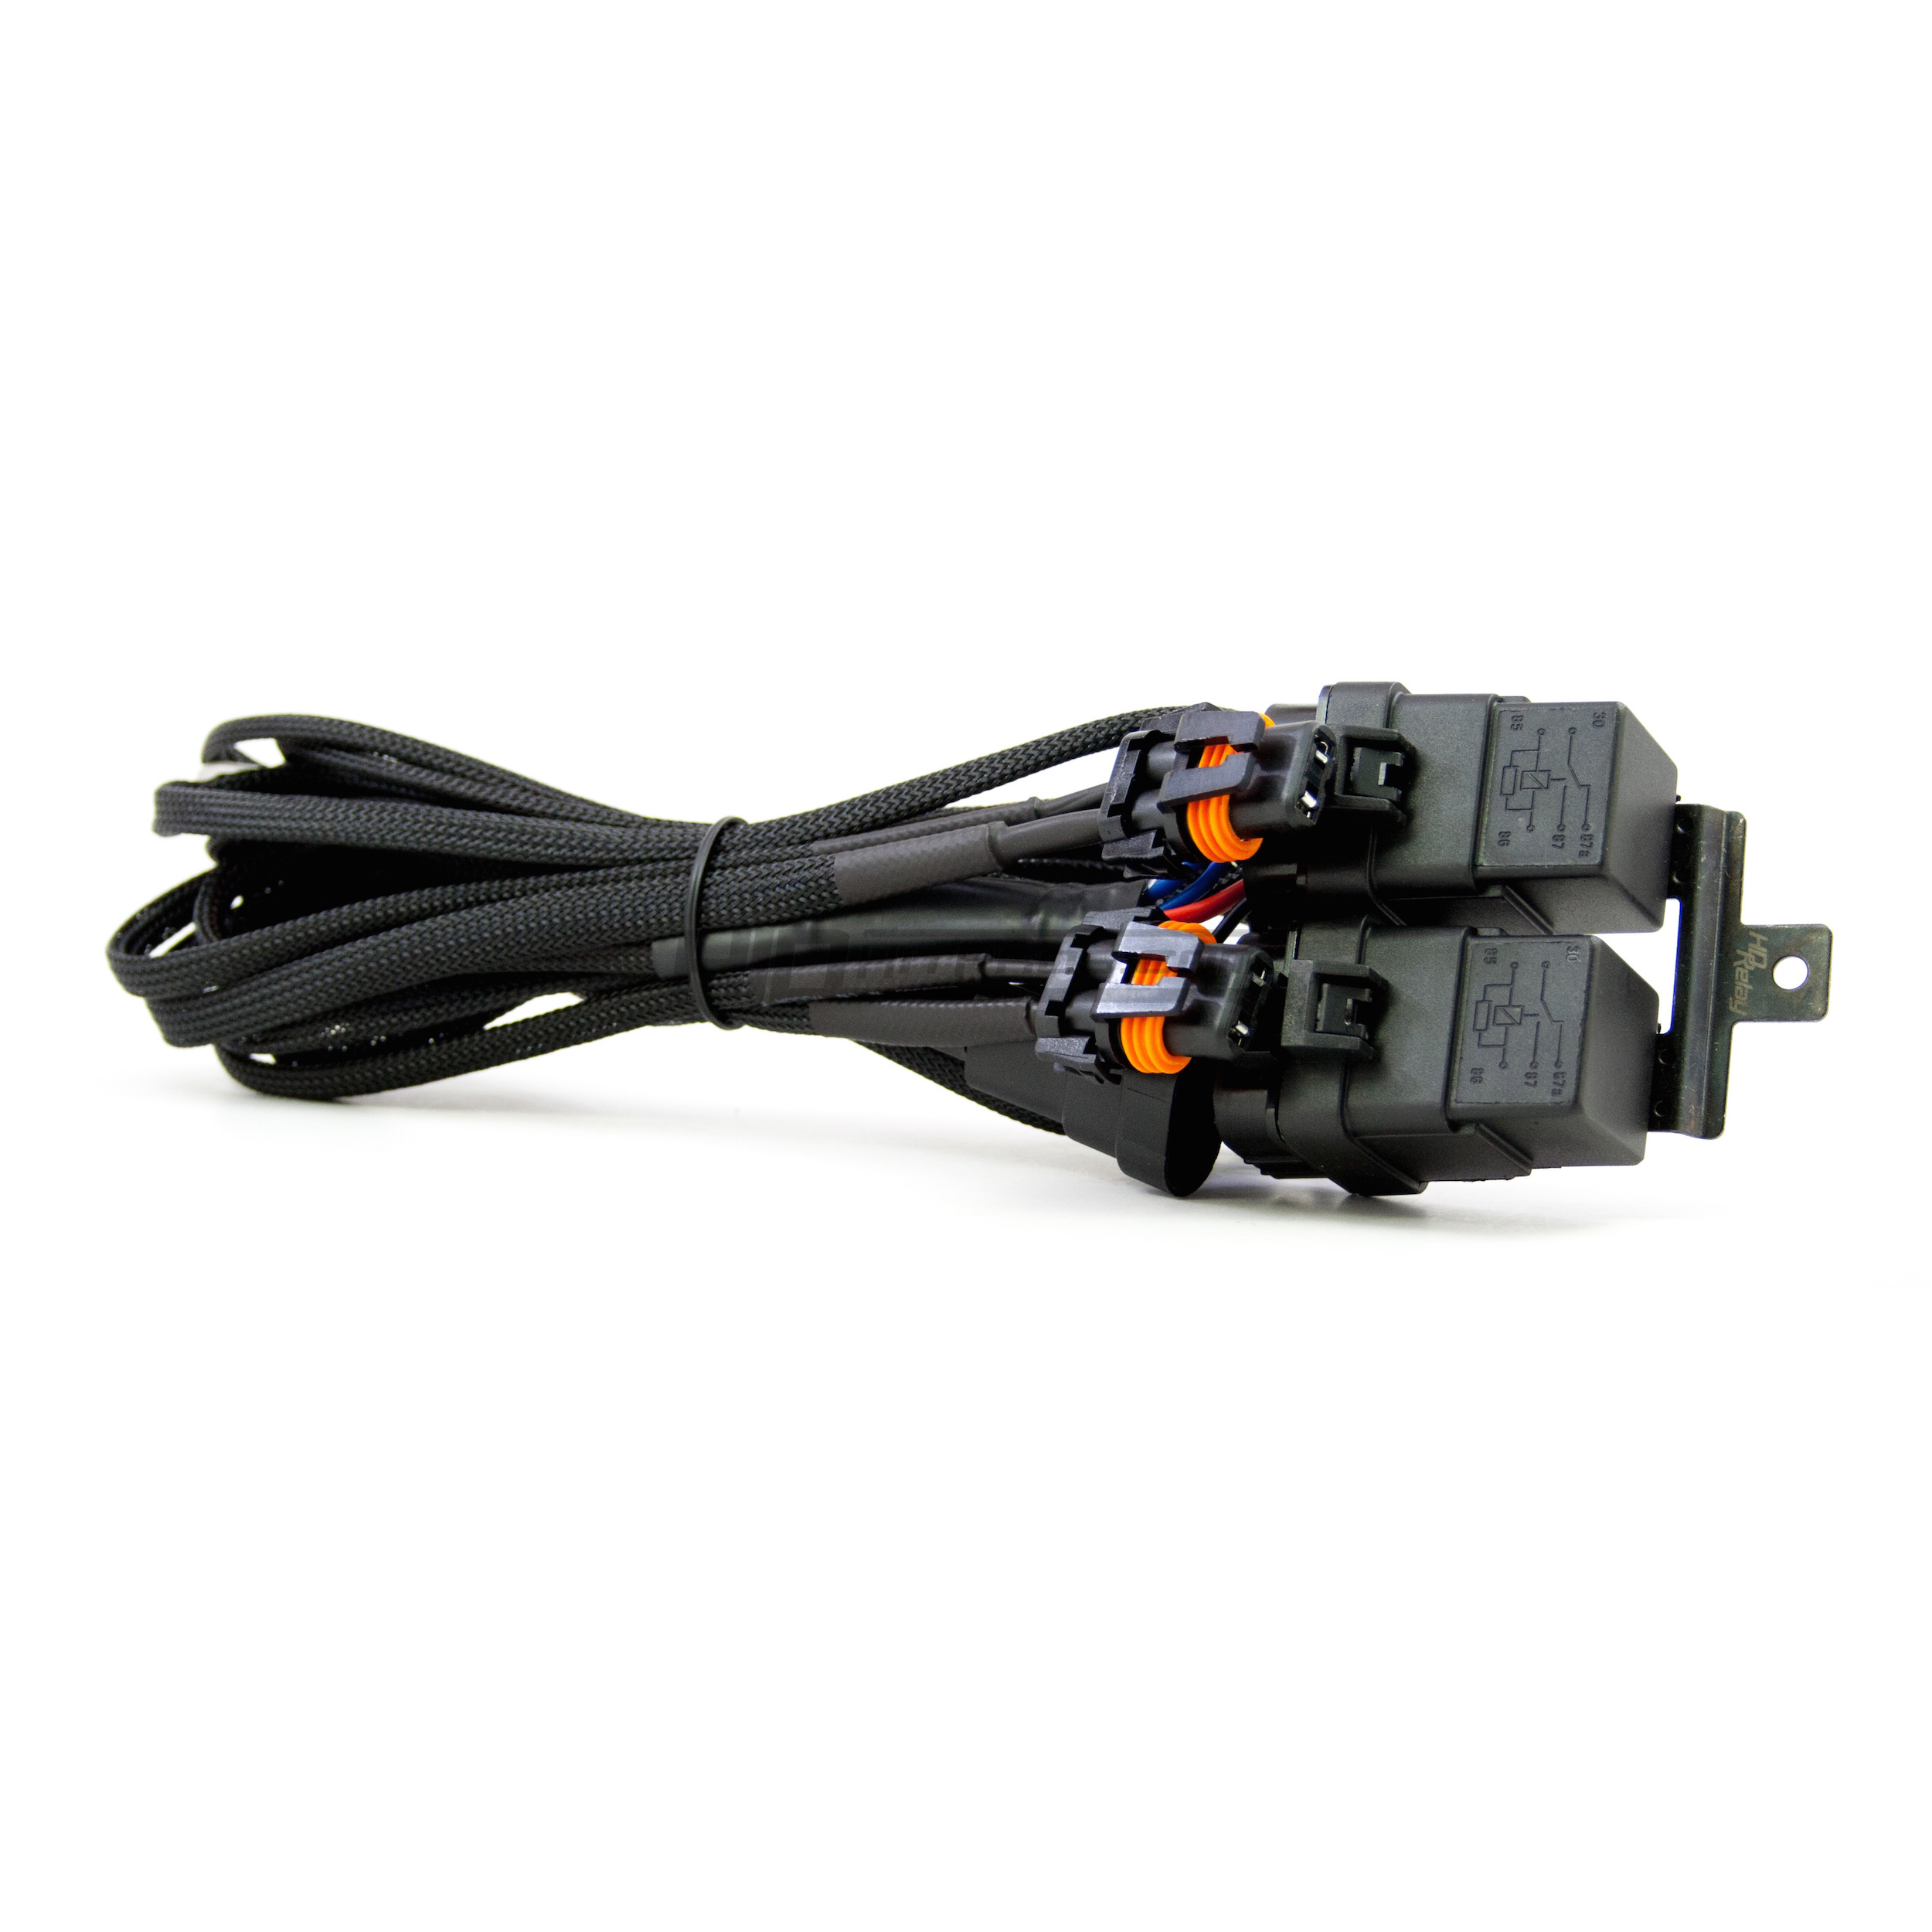 Morimoto plug and play hd hid relay harness hid kit pros morimoto plug and play hd hid relay harness ccuart Image collections